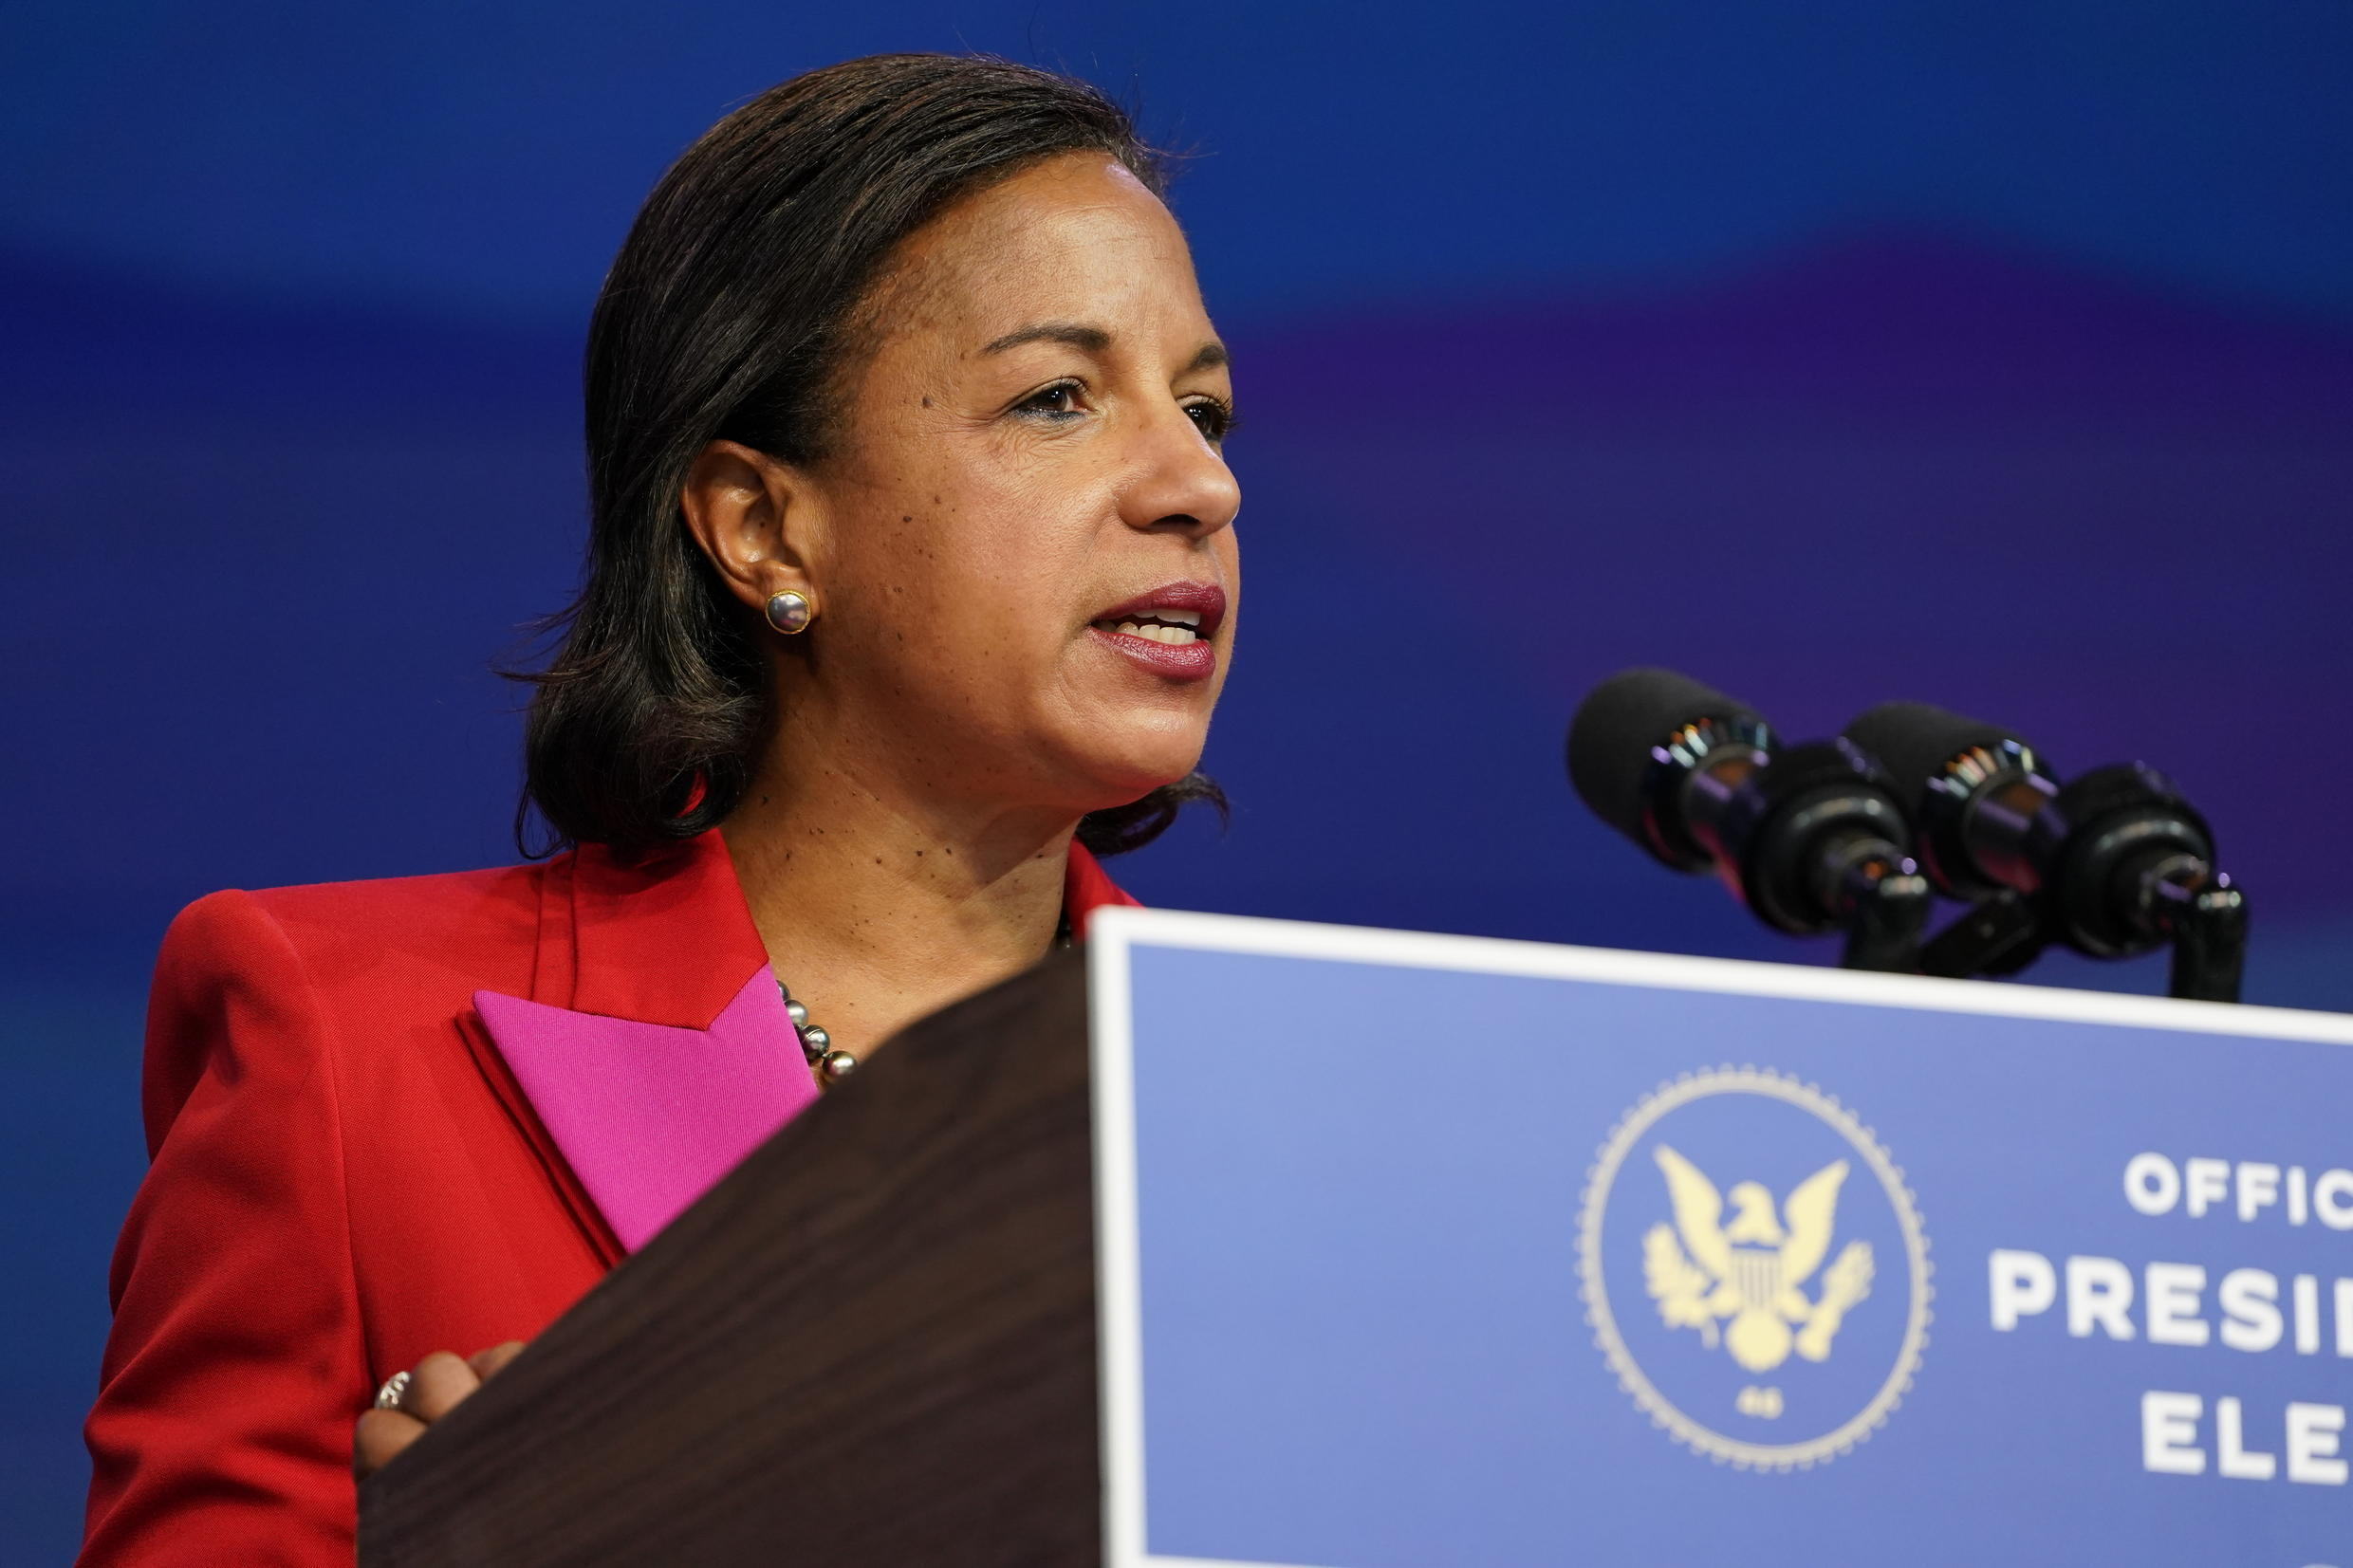 Susan Rice, the Biden administration's choice to lead the White House Domestic Policy Council, speaks during an event at The Queen theater in Wilmington, Del., Friday, Dec. 11, 2020.